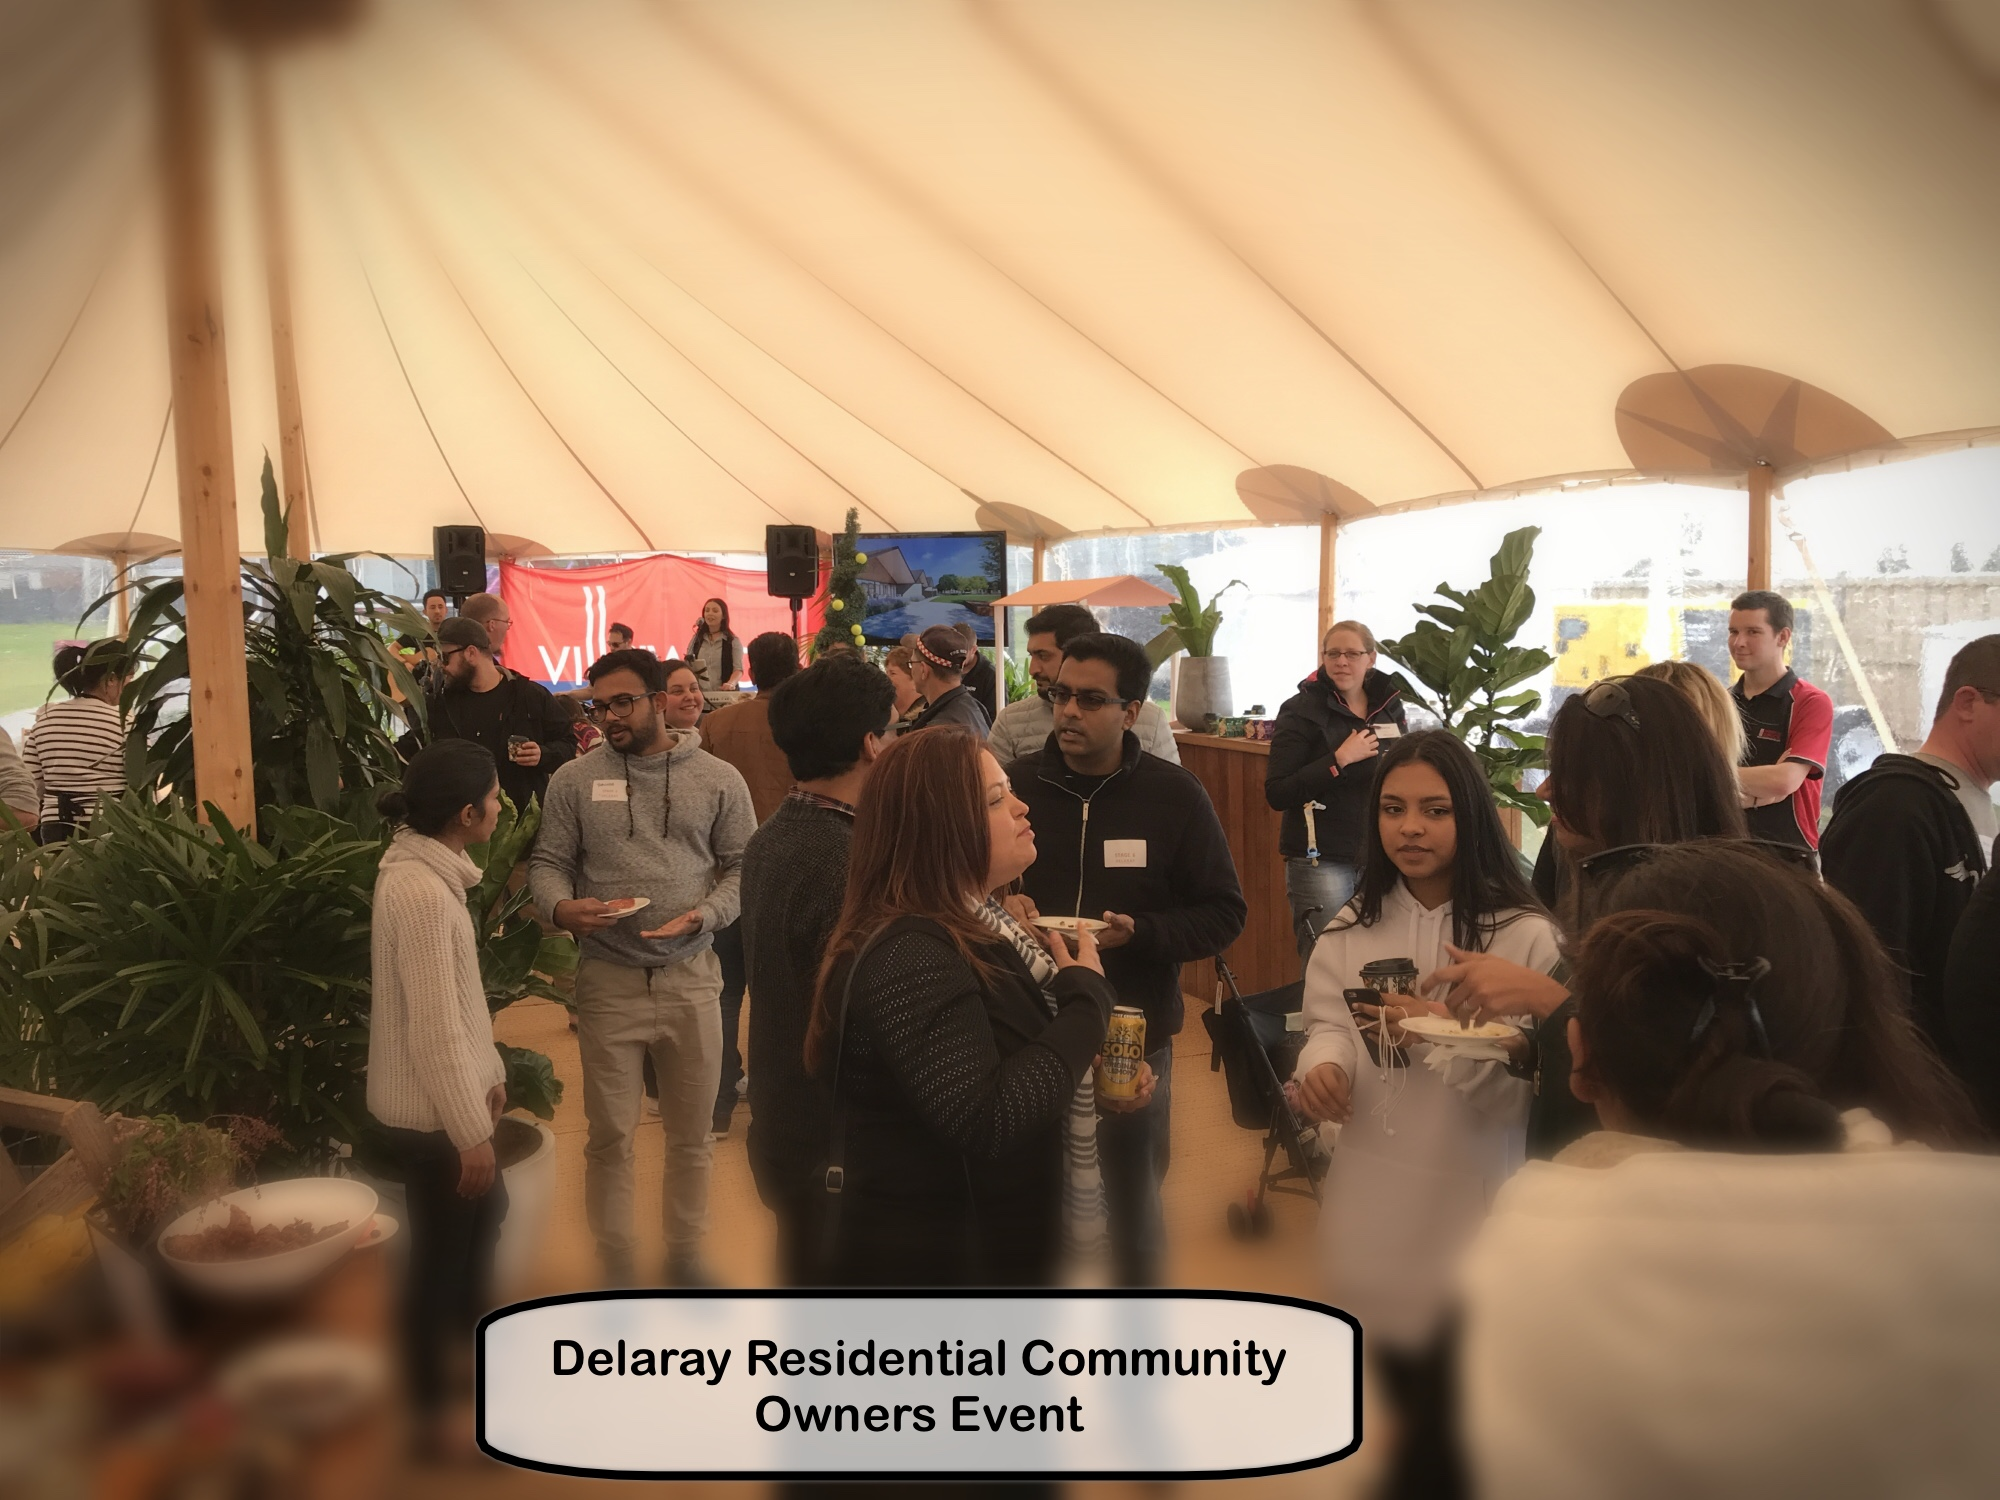 Delaray – Residential Community Event a success